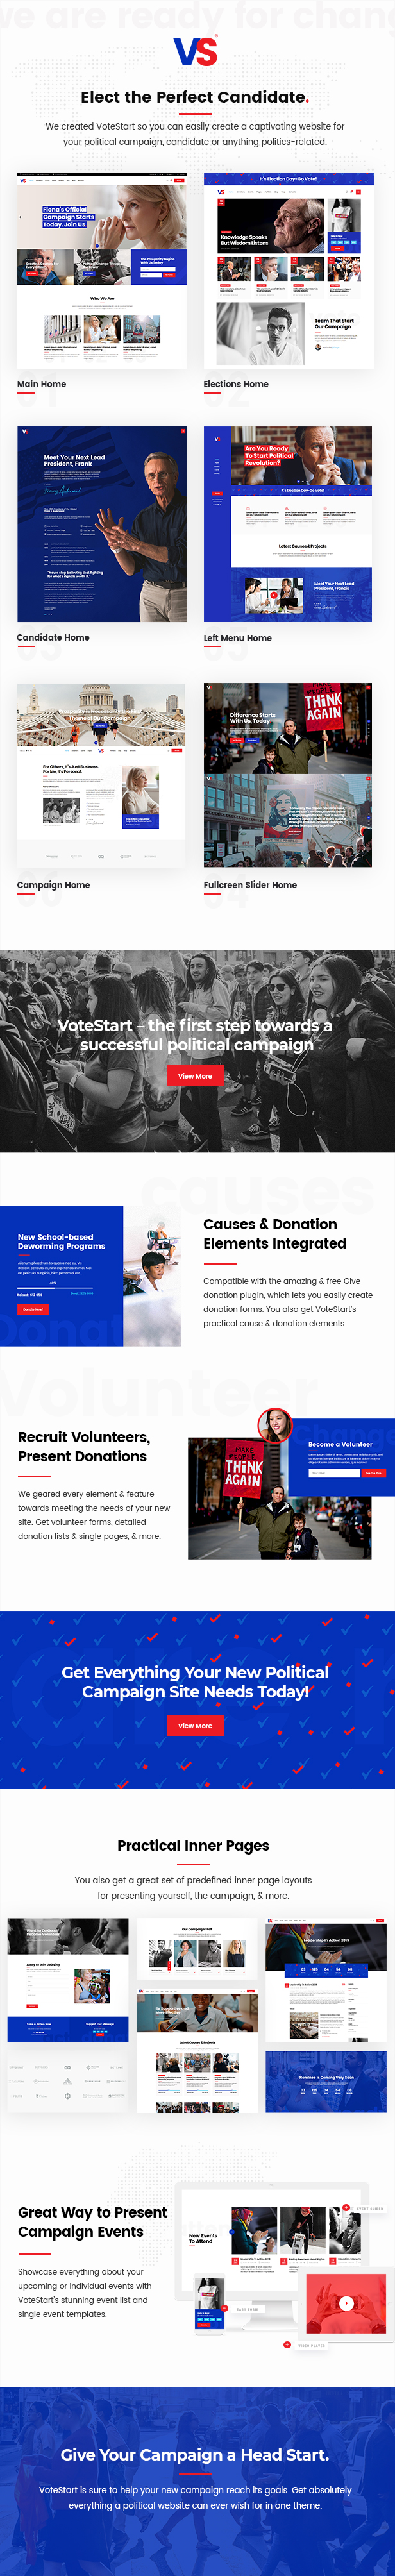 VoteStart - Political Campaign Theme - 1